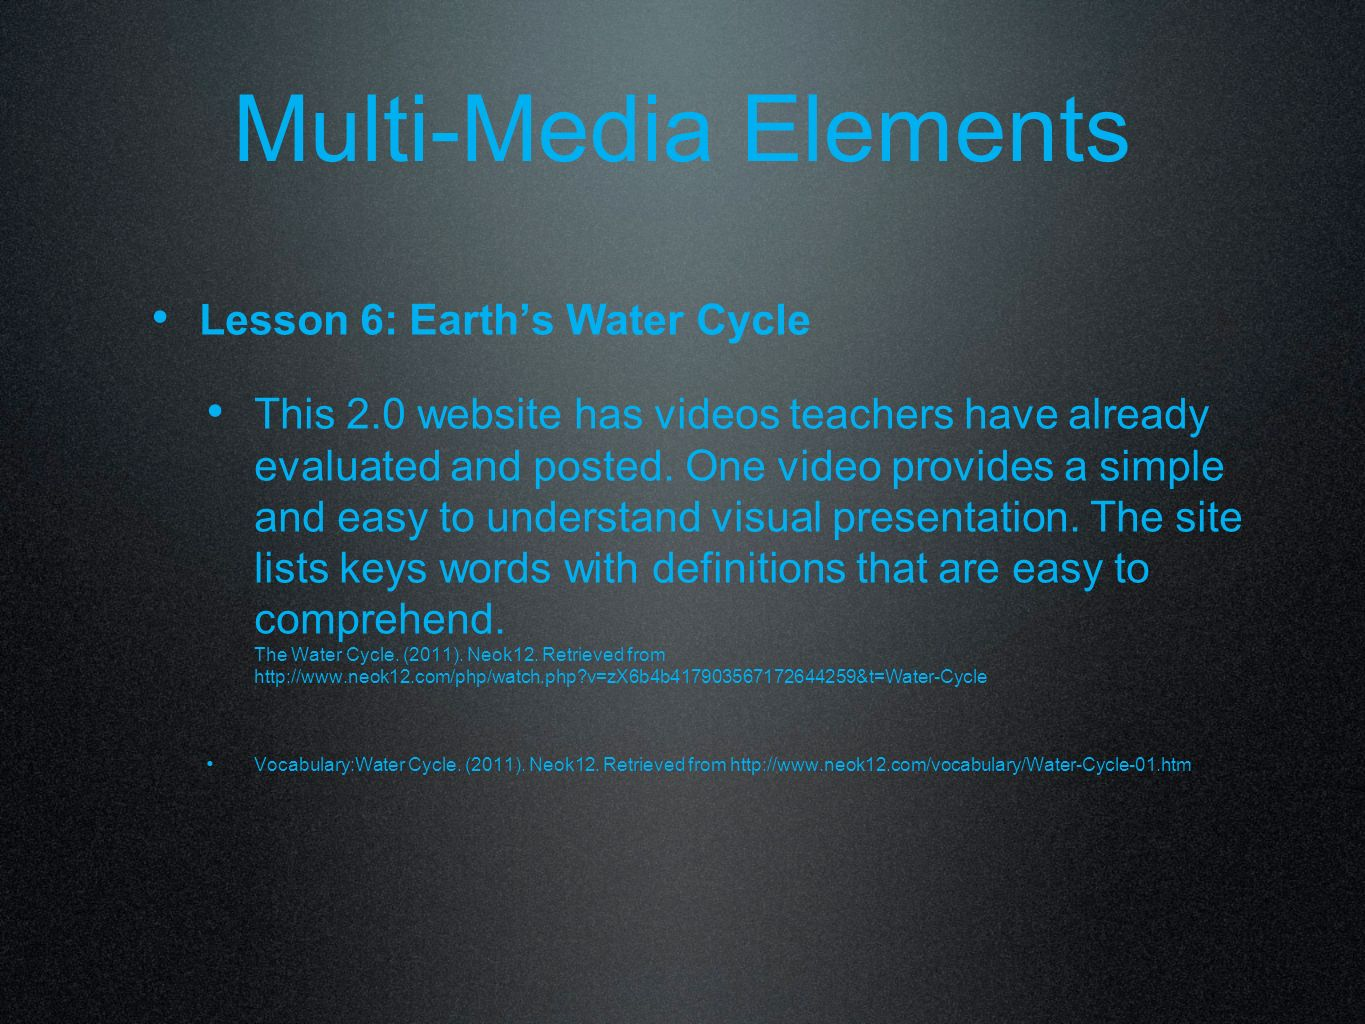 Multi-Media Elements Lesson 6: Earth's Water Cycle